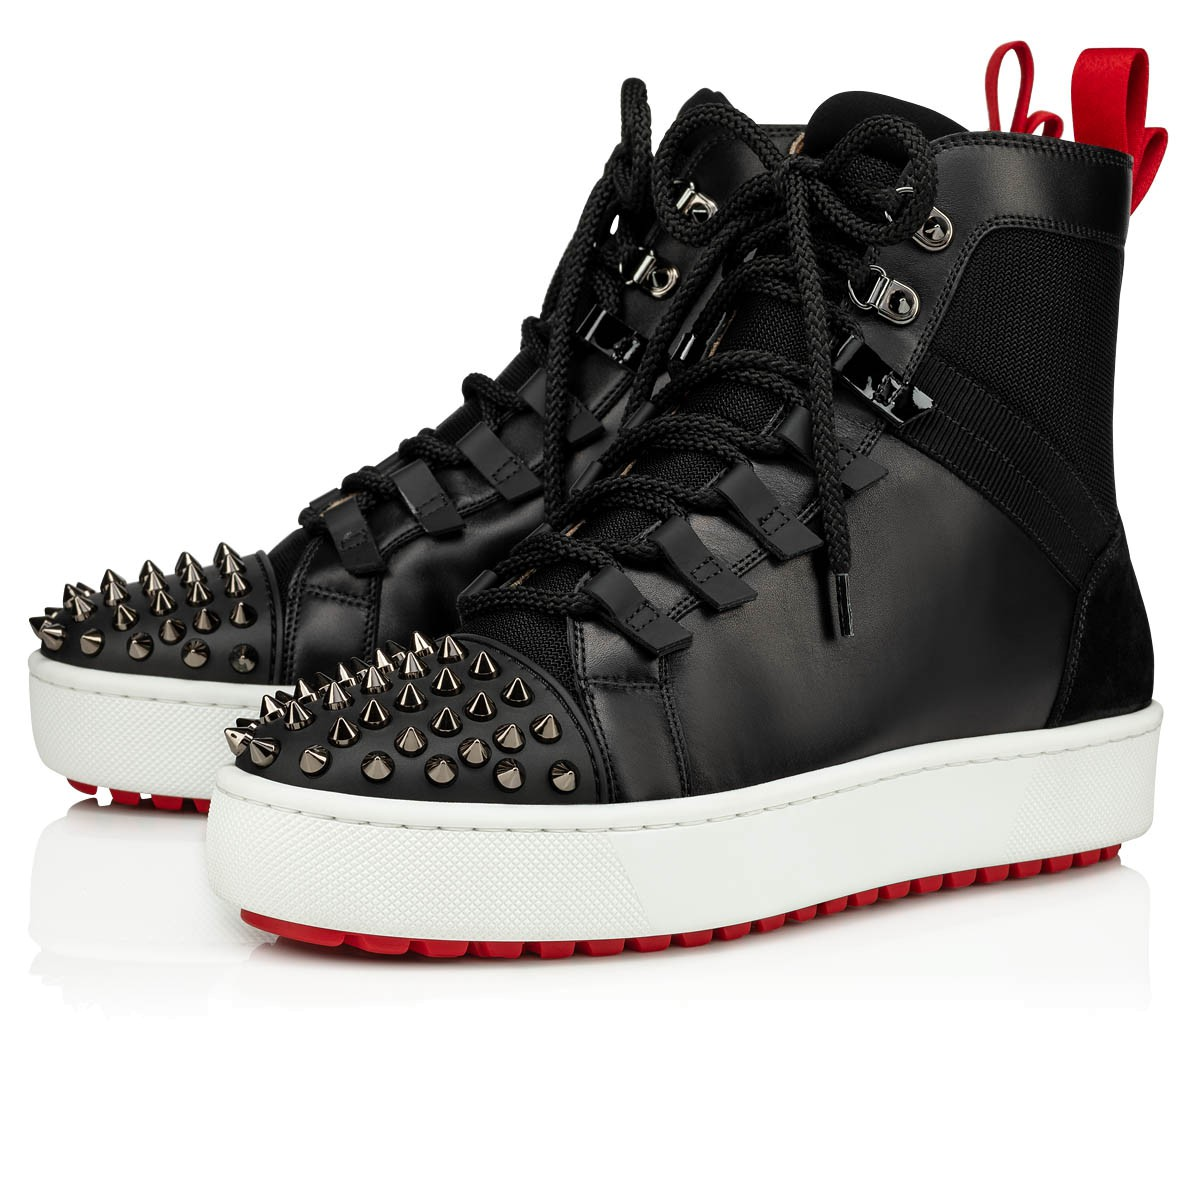 Shoes - Smartic - Christian Louboutin